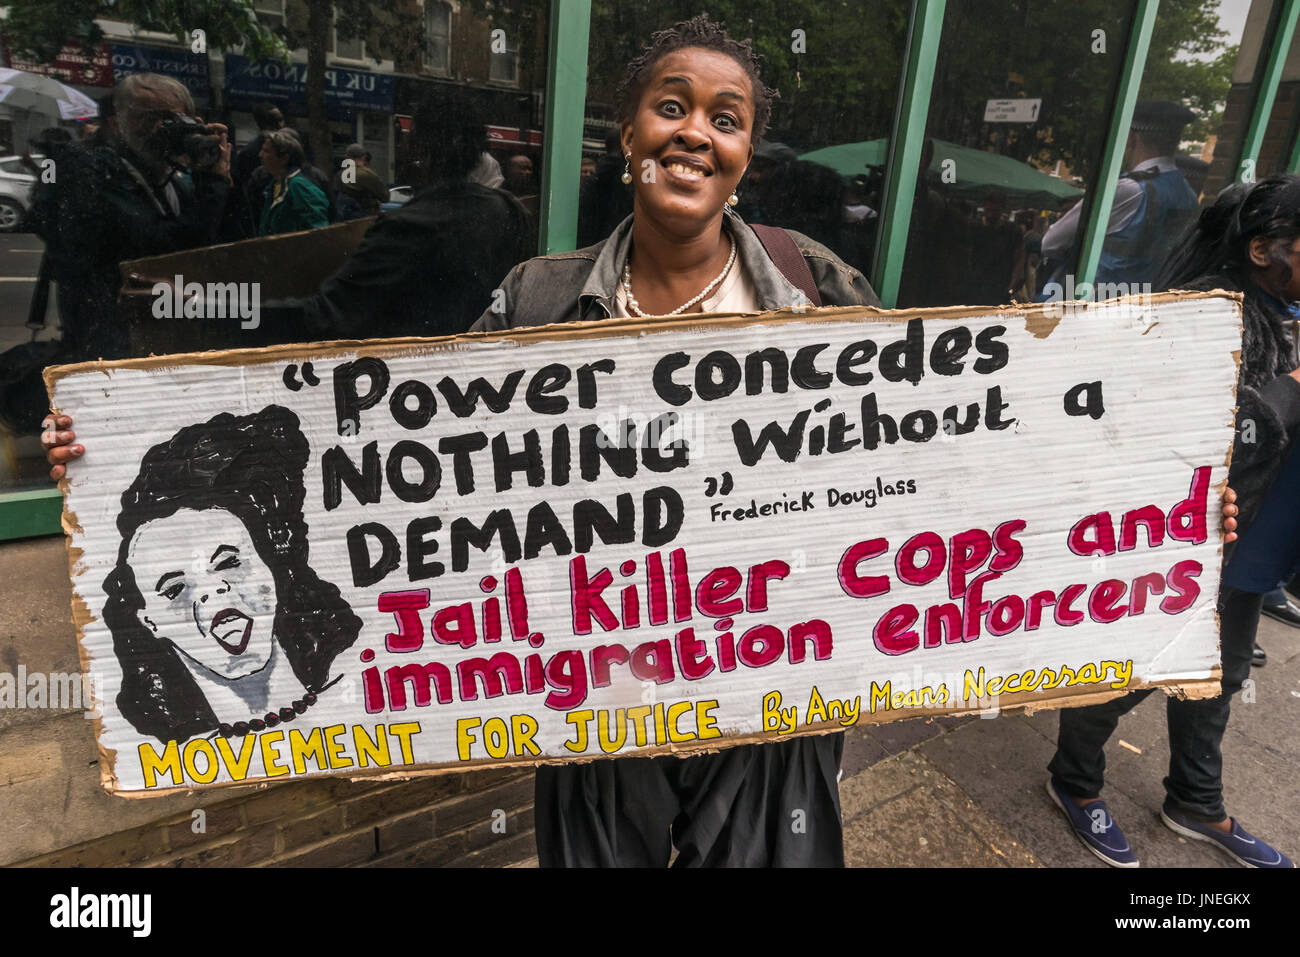 July 29, 2017 - London, UK - London, UK. 29th July 2017. A protesters holds a Movement fro Justice poster calling - Stock Image